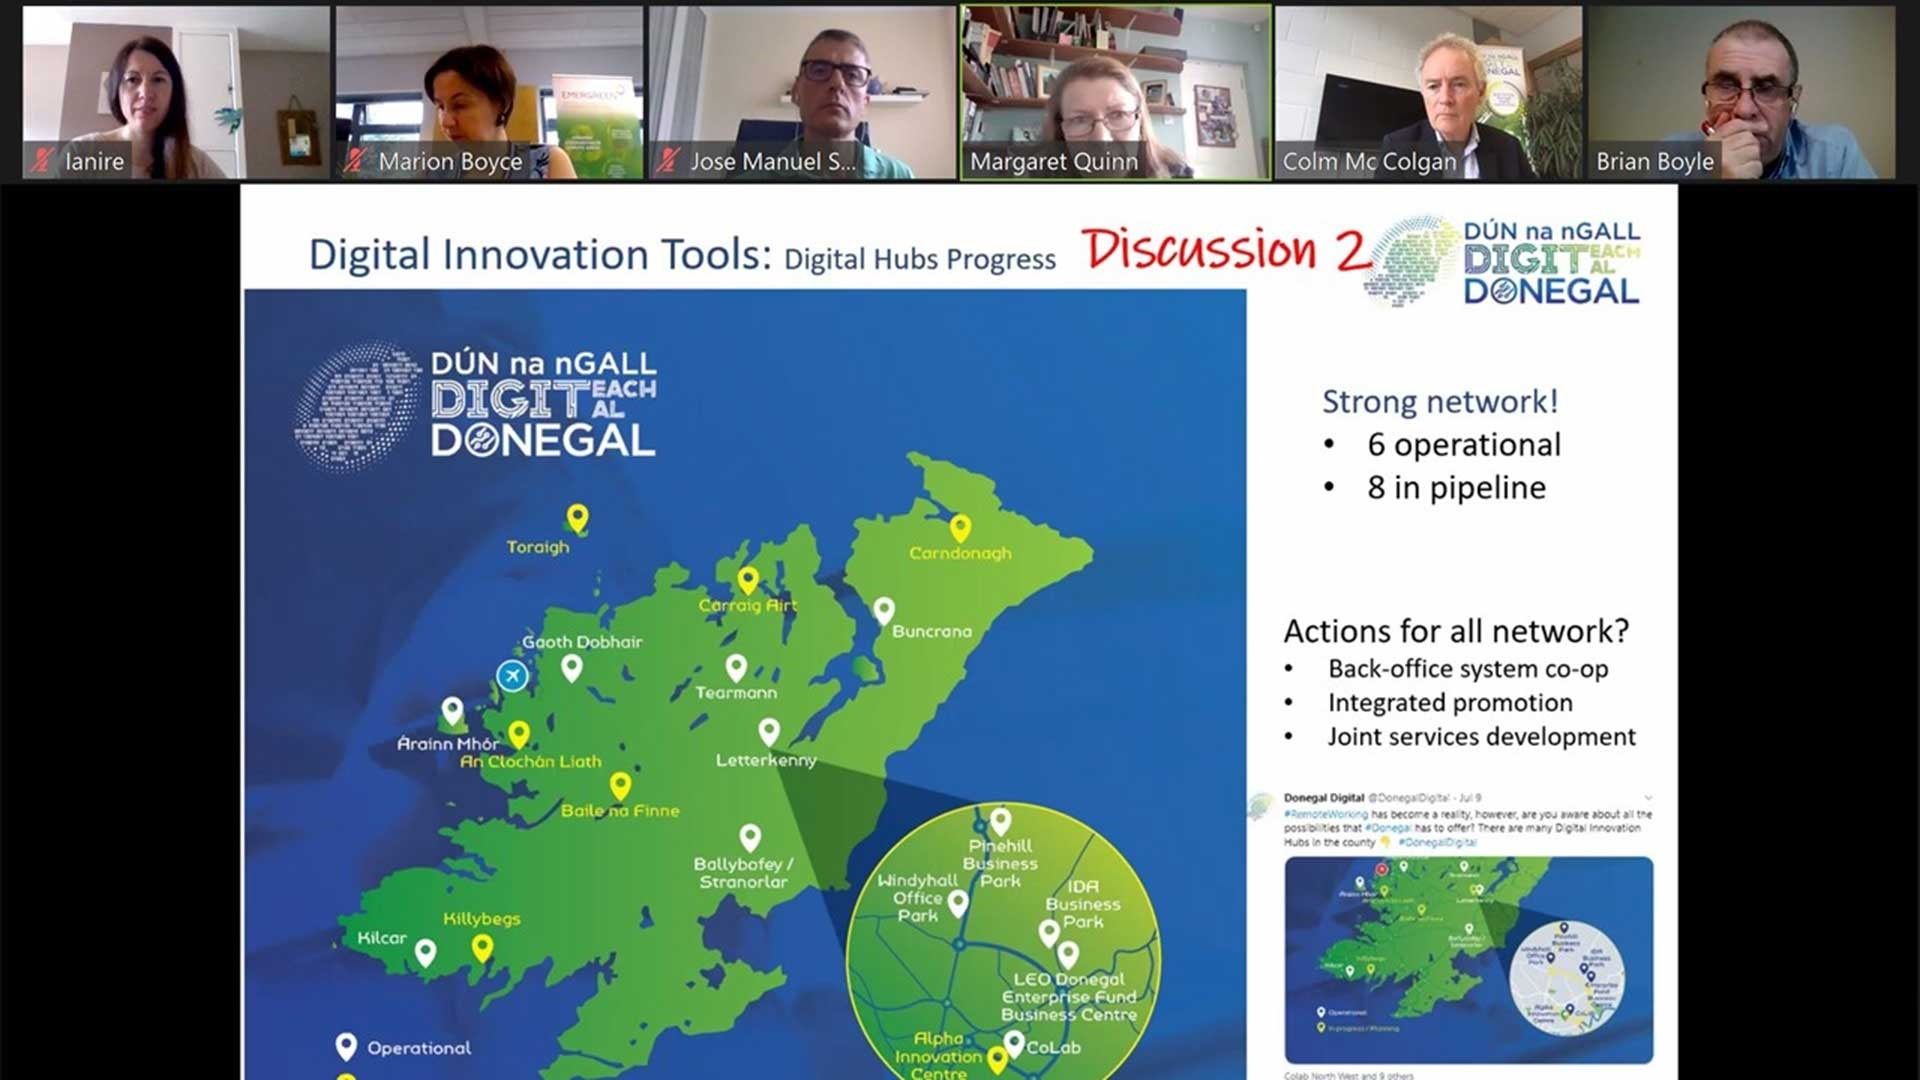 Donegal Digital Action Plan Meeting 12 May 2021